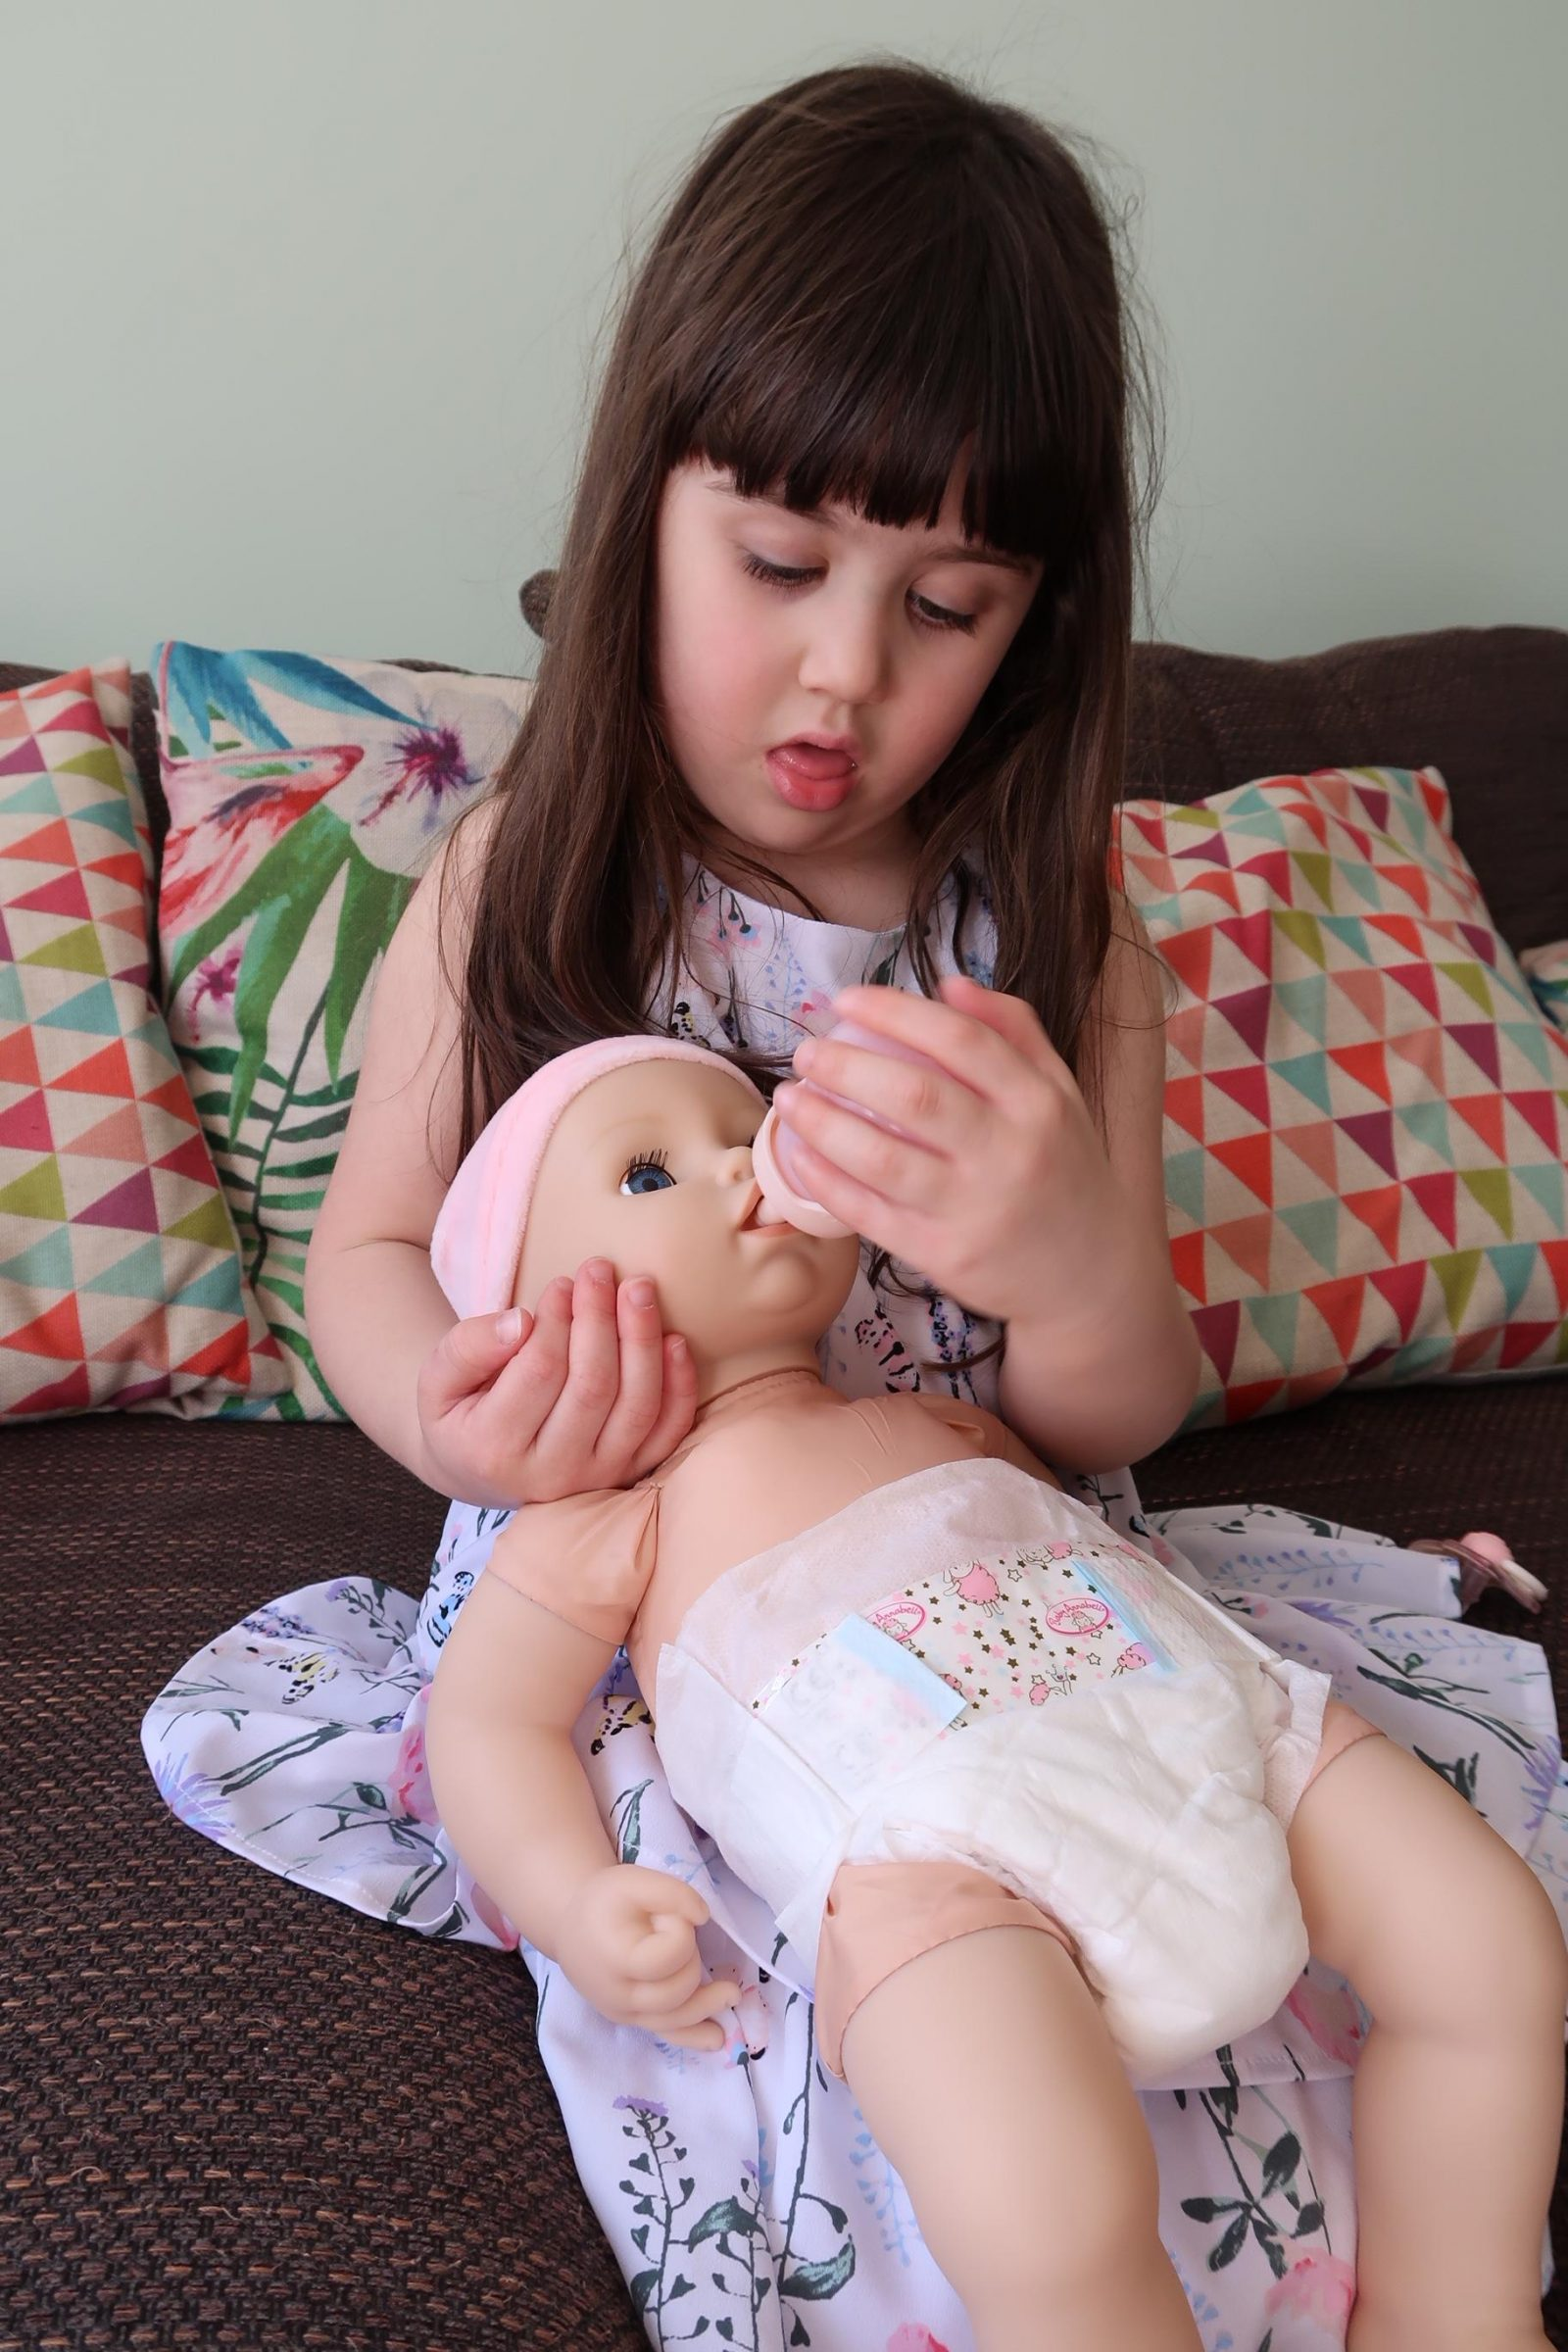 girl feeding interactive baby annabell doll with bottle